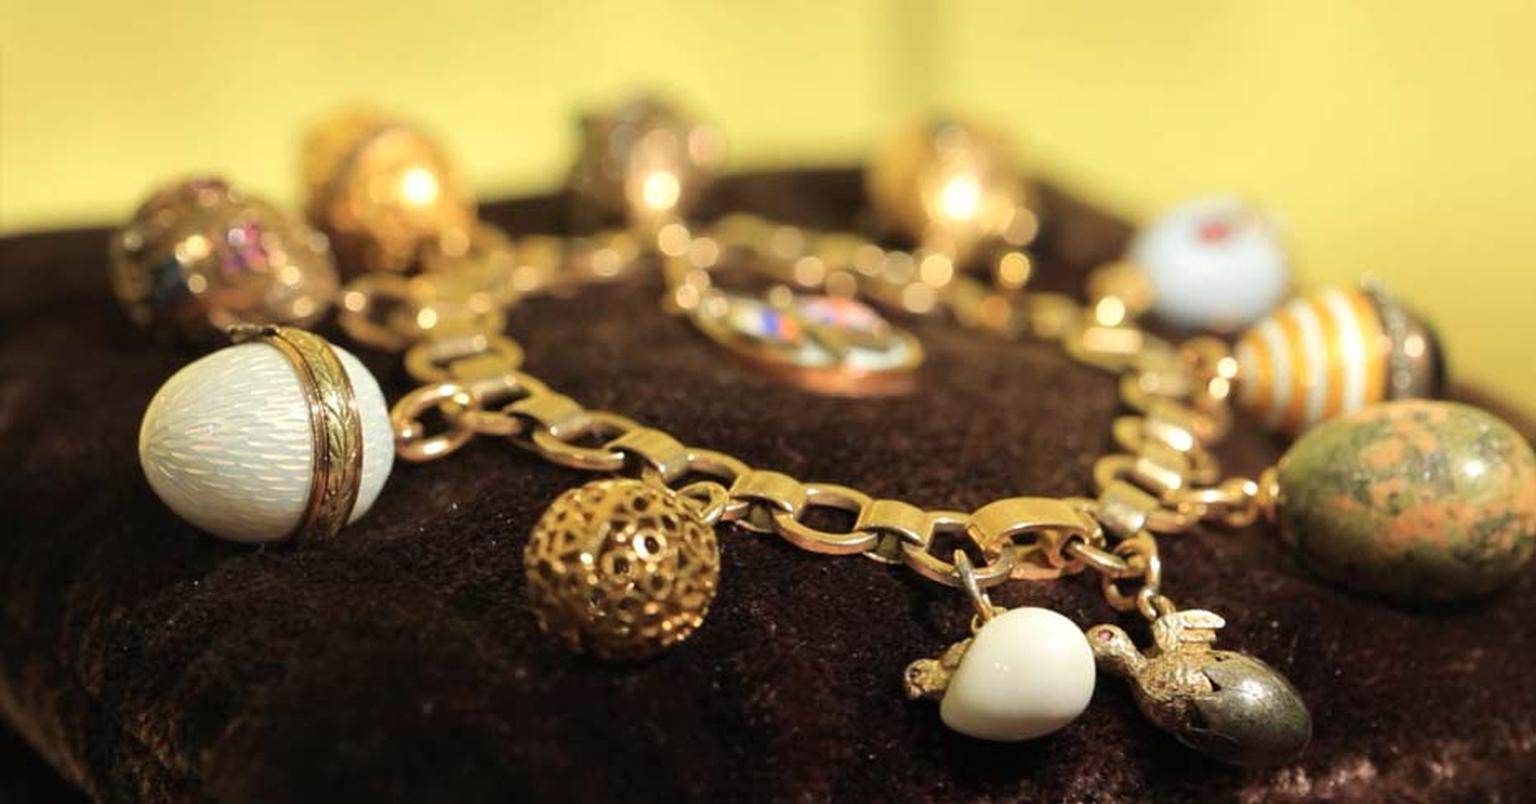 Fabergé charm bracelets available at Harrods.